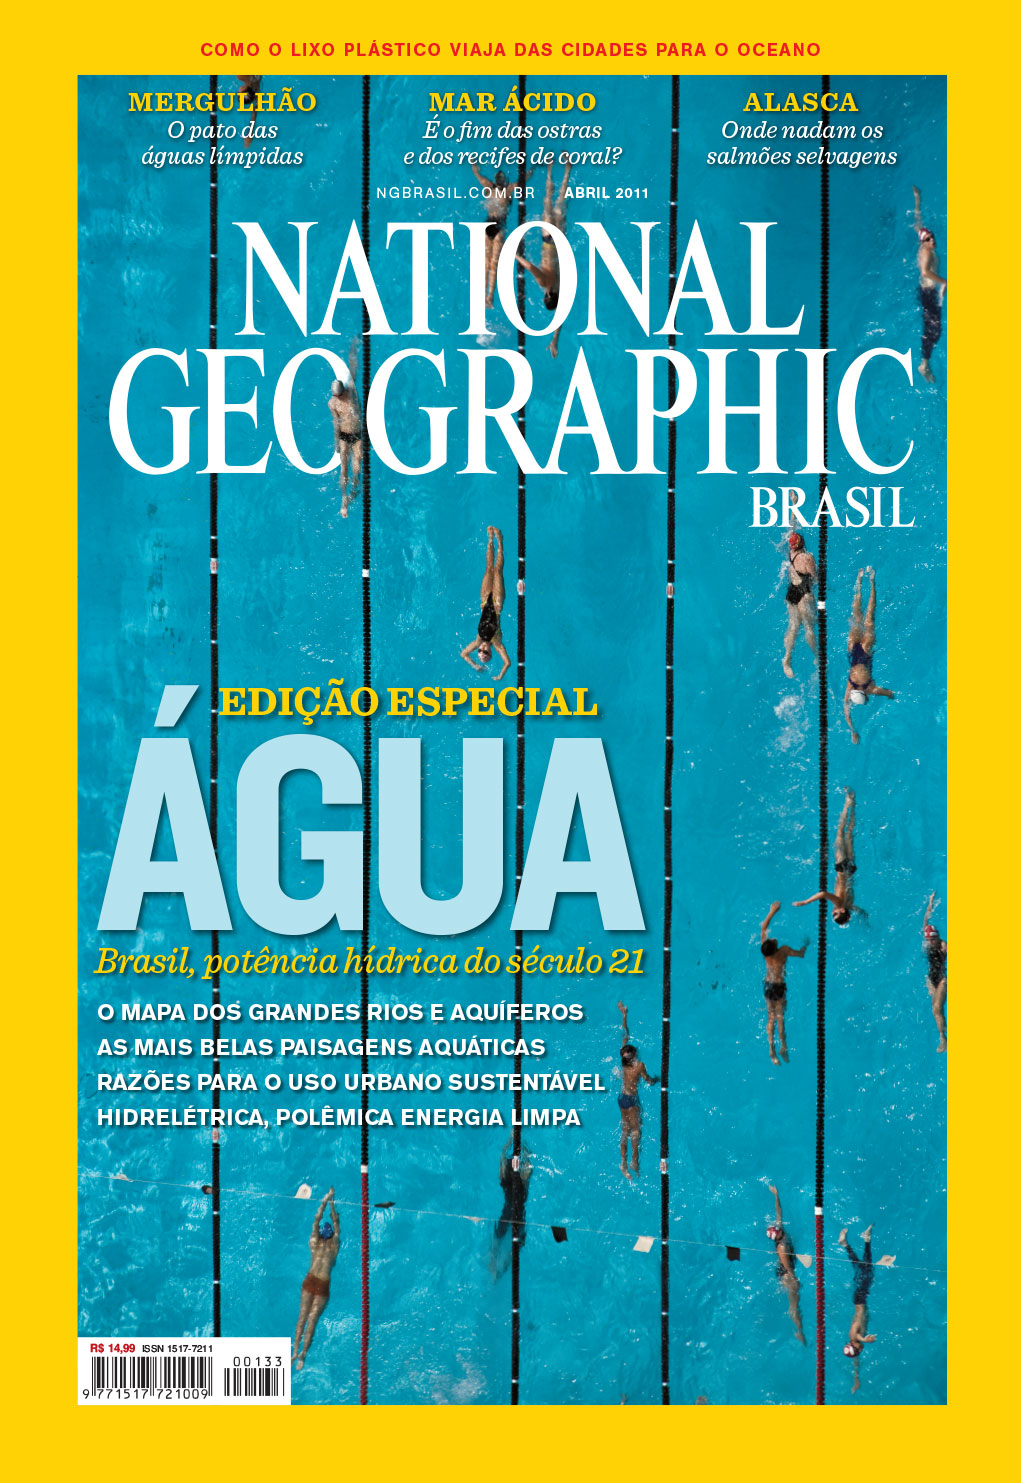 Photo editing and cover design | NG Brazil, April 2011. Photo:Cassio Vasconcellos